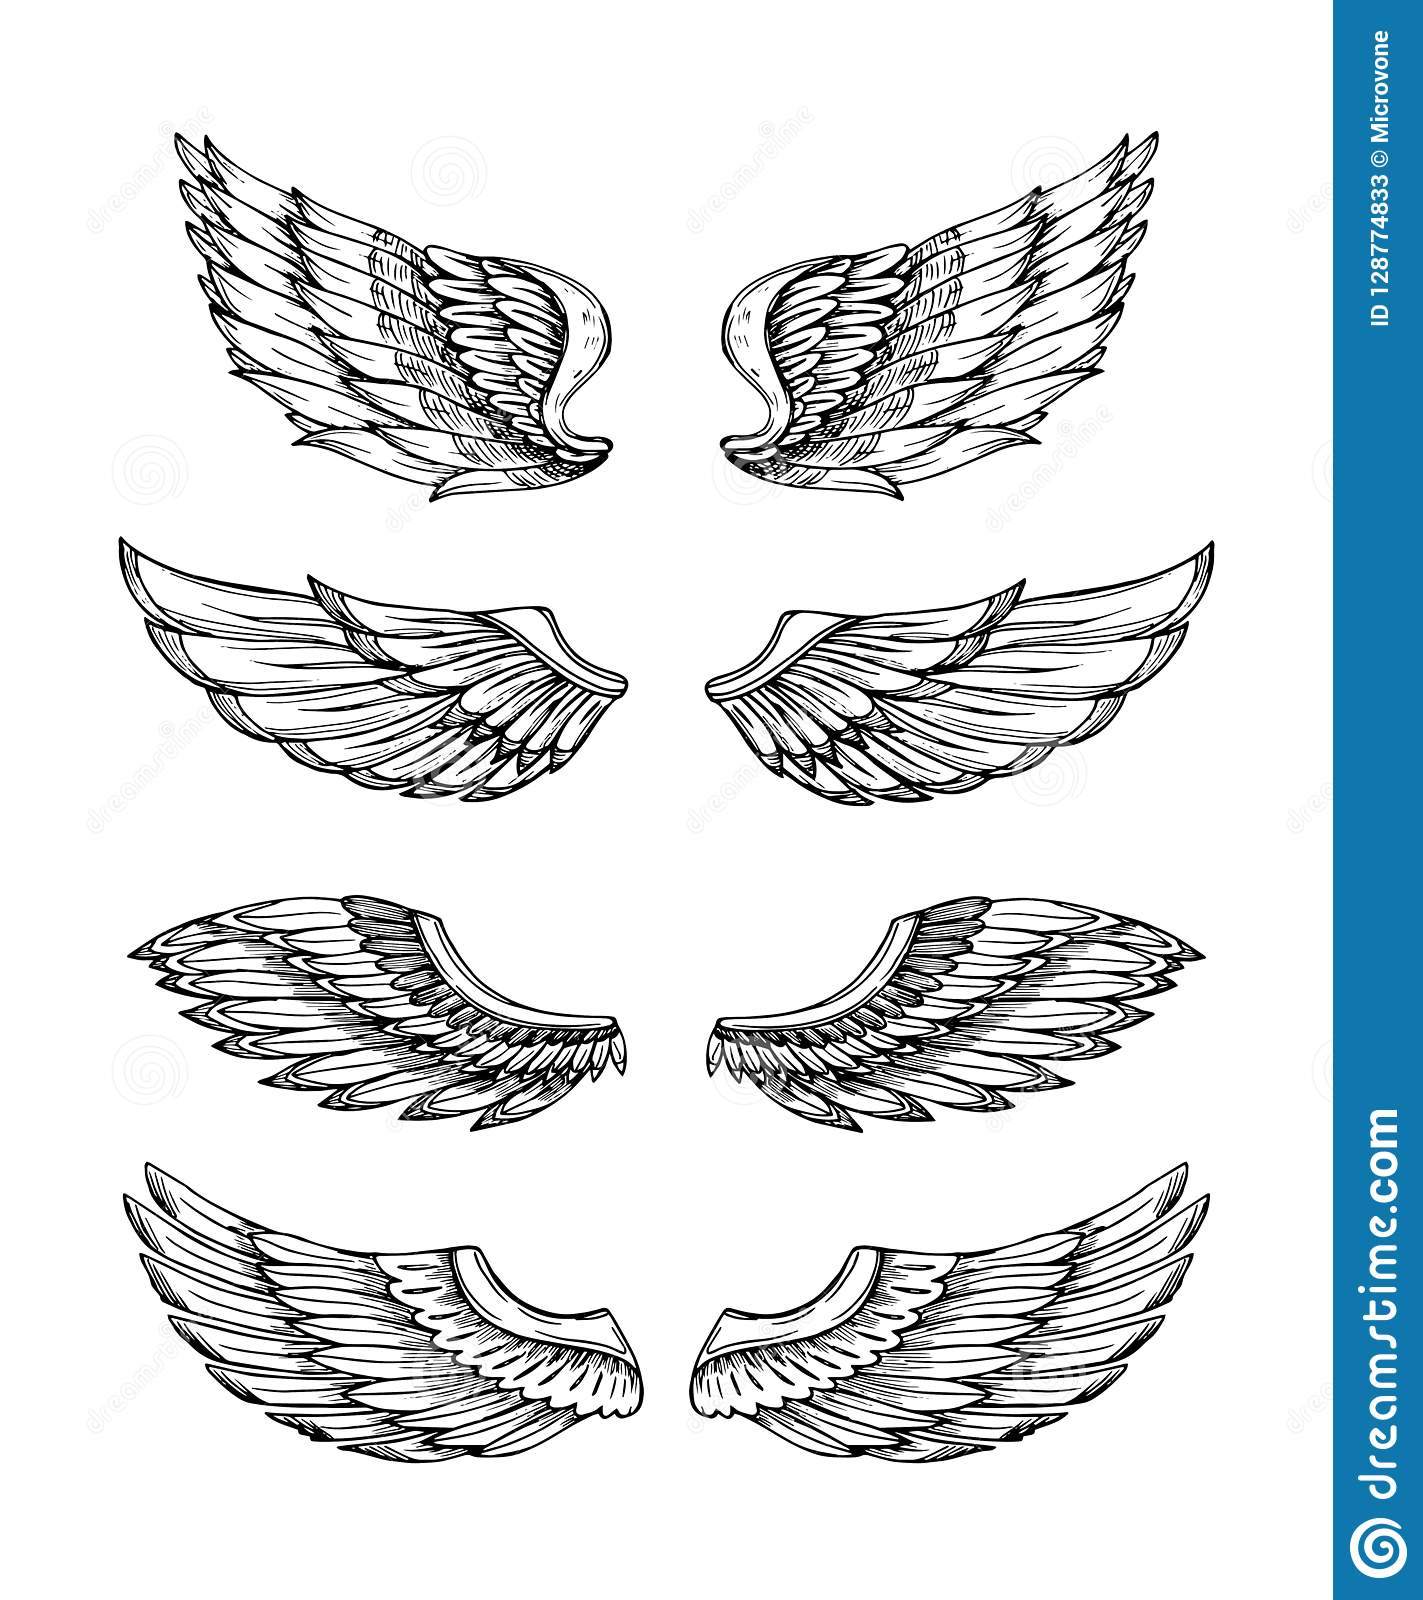 2164065e5 Angel wings. Abstract black winged design. Eagle bird wing hand drawn isolated  set. Feather bird wings, gothic tattoo illustration wing